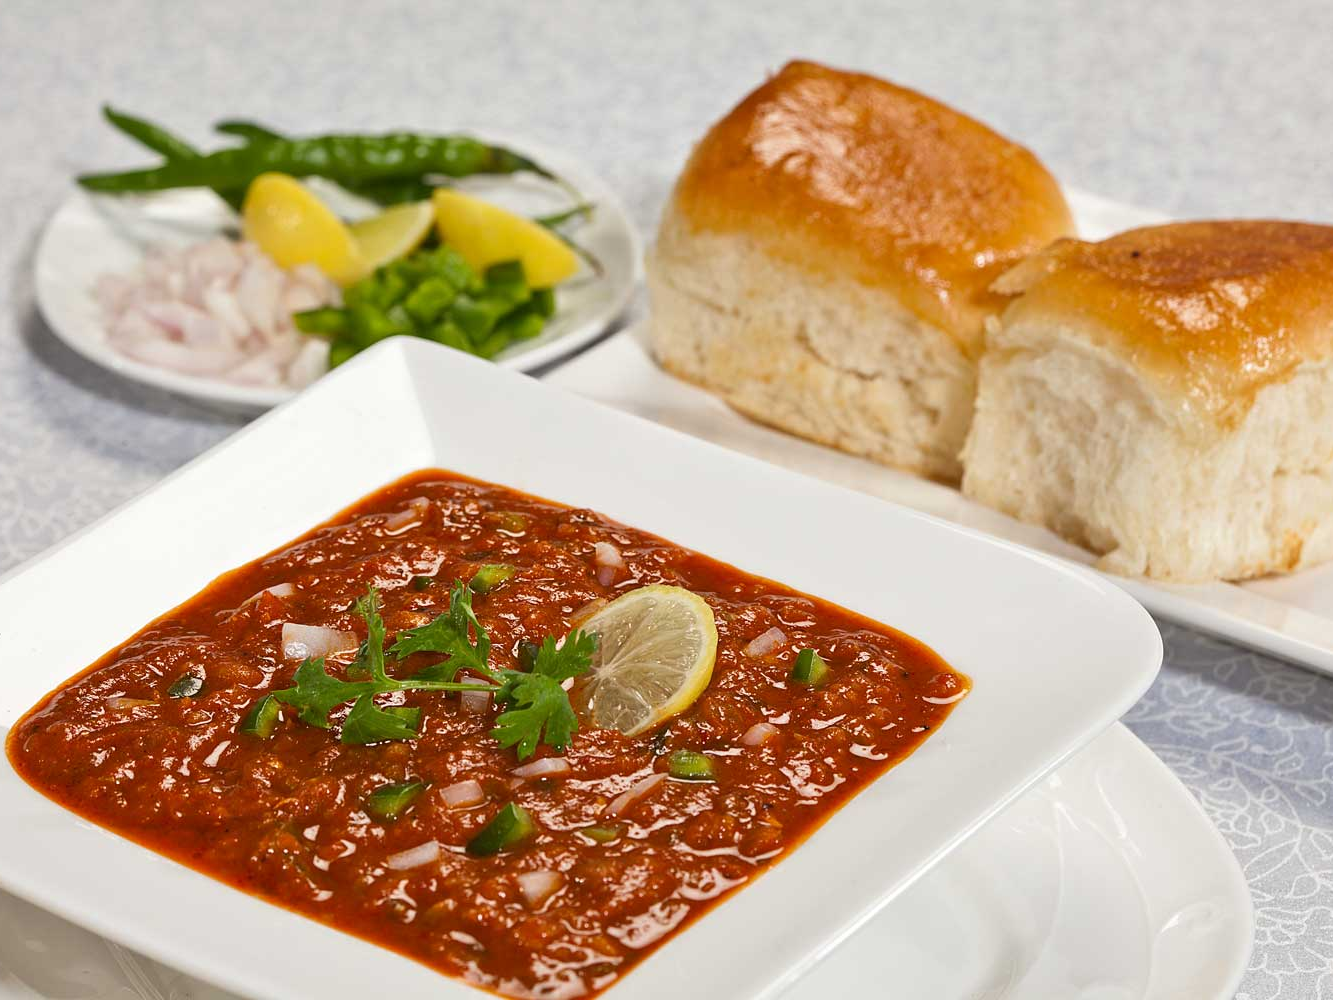 Pav Bhaji, Pune, Pocket Friendly Places, Budget Restaurants, Famous Pav Bhaji In Pune, Famous Restaurants In Pune, Pocket Friendly Restaurants In Pune, Pocket Friendly Pav Bhaji In Pune, Relax Pav Bhaji, Sahakar Nagar 2, Supreme Snacks, Mayur Pav Bhaji an, Anand Veg, Nal Stop, Shubham, J M Road, Siddharth Pav Bhaji, Camp, Girija Pav Bhaji, Jayashree Garden, Tilak Road, Famous Pav Bhaji Outlets In Pune, Pocket Freindly Pav Bhaji Outlets In Pune